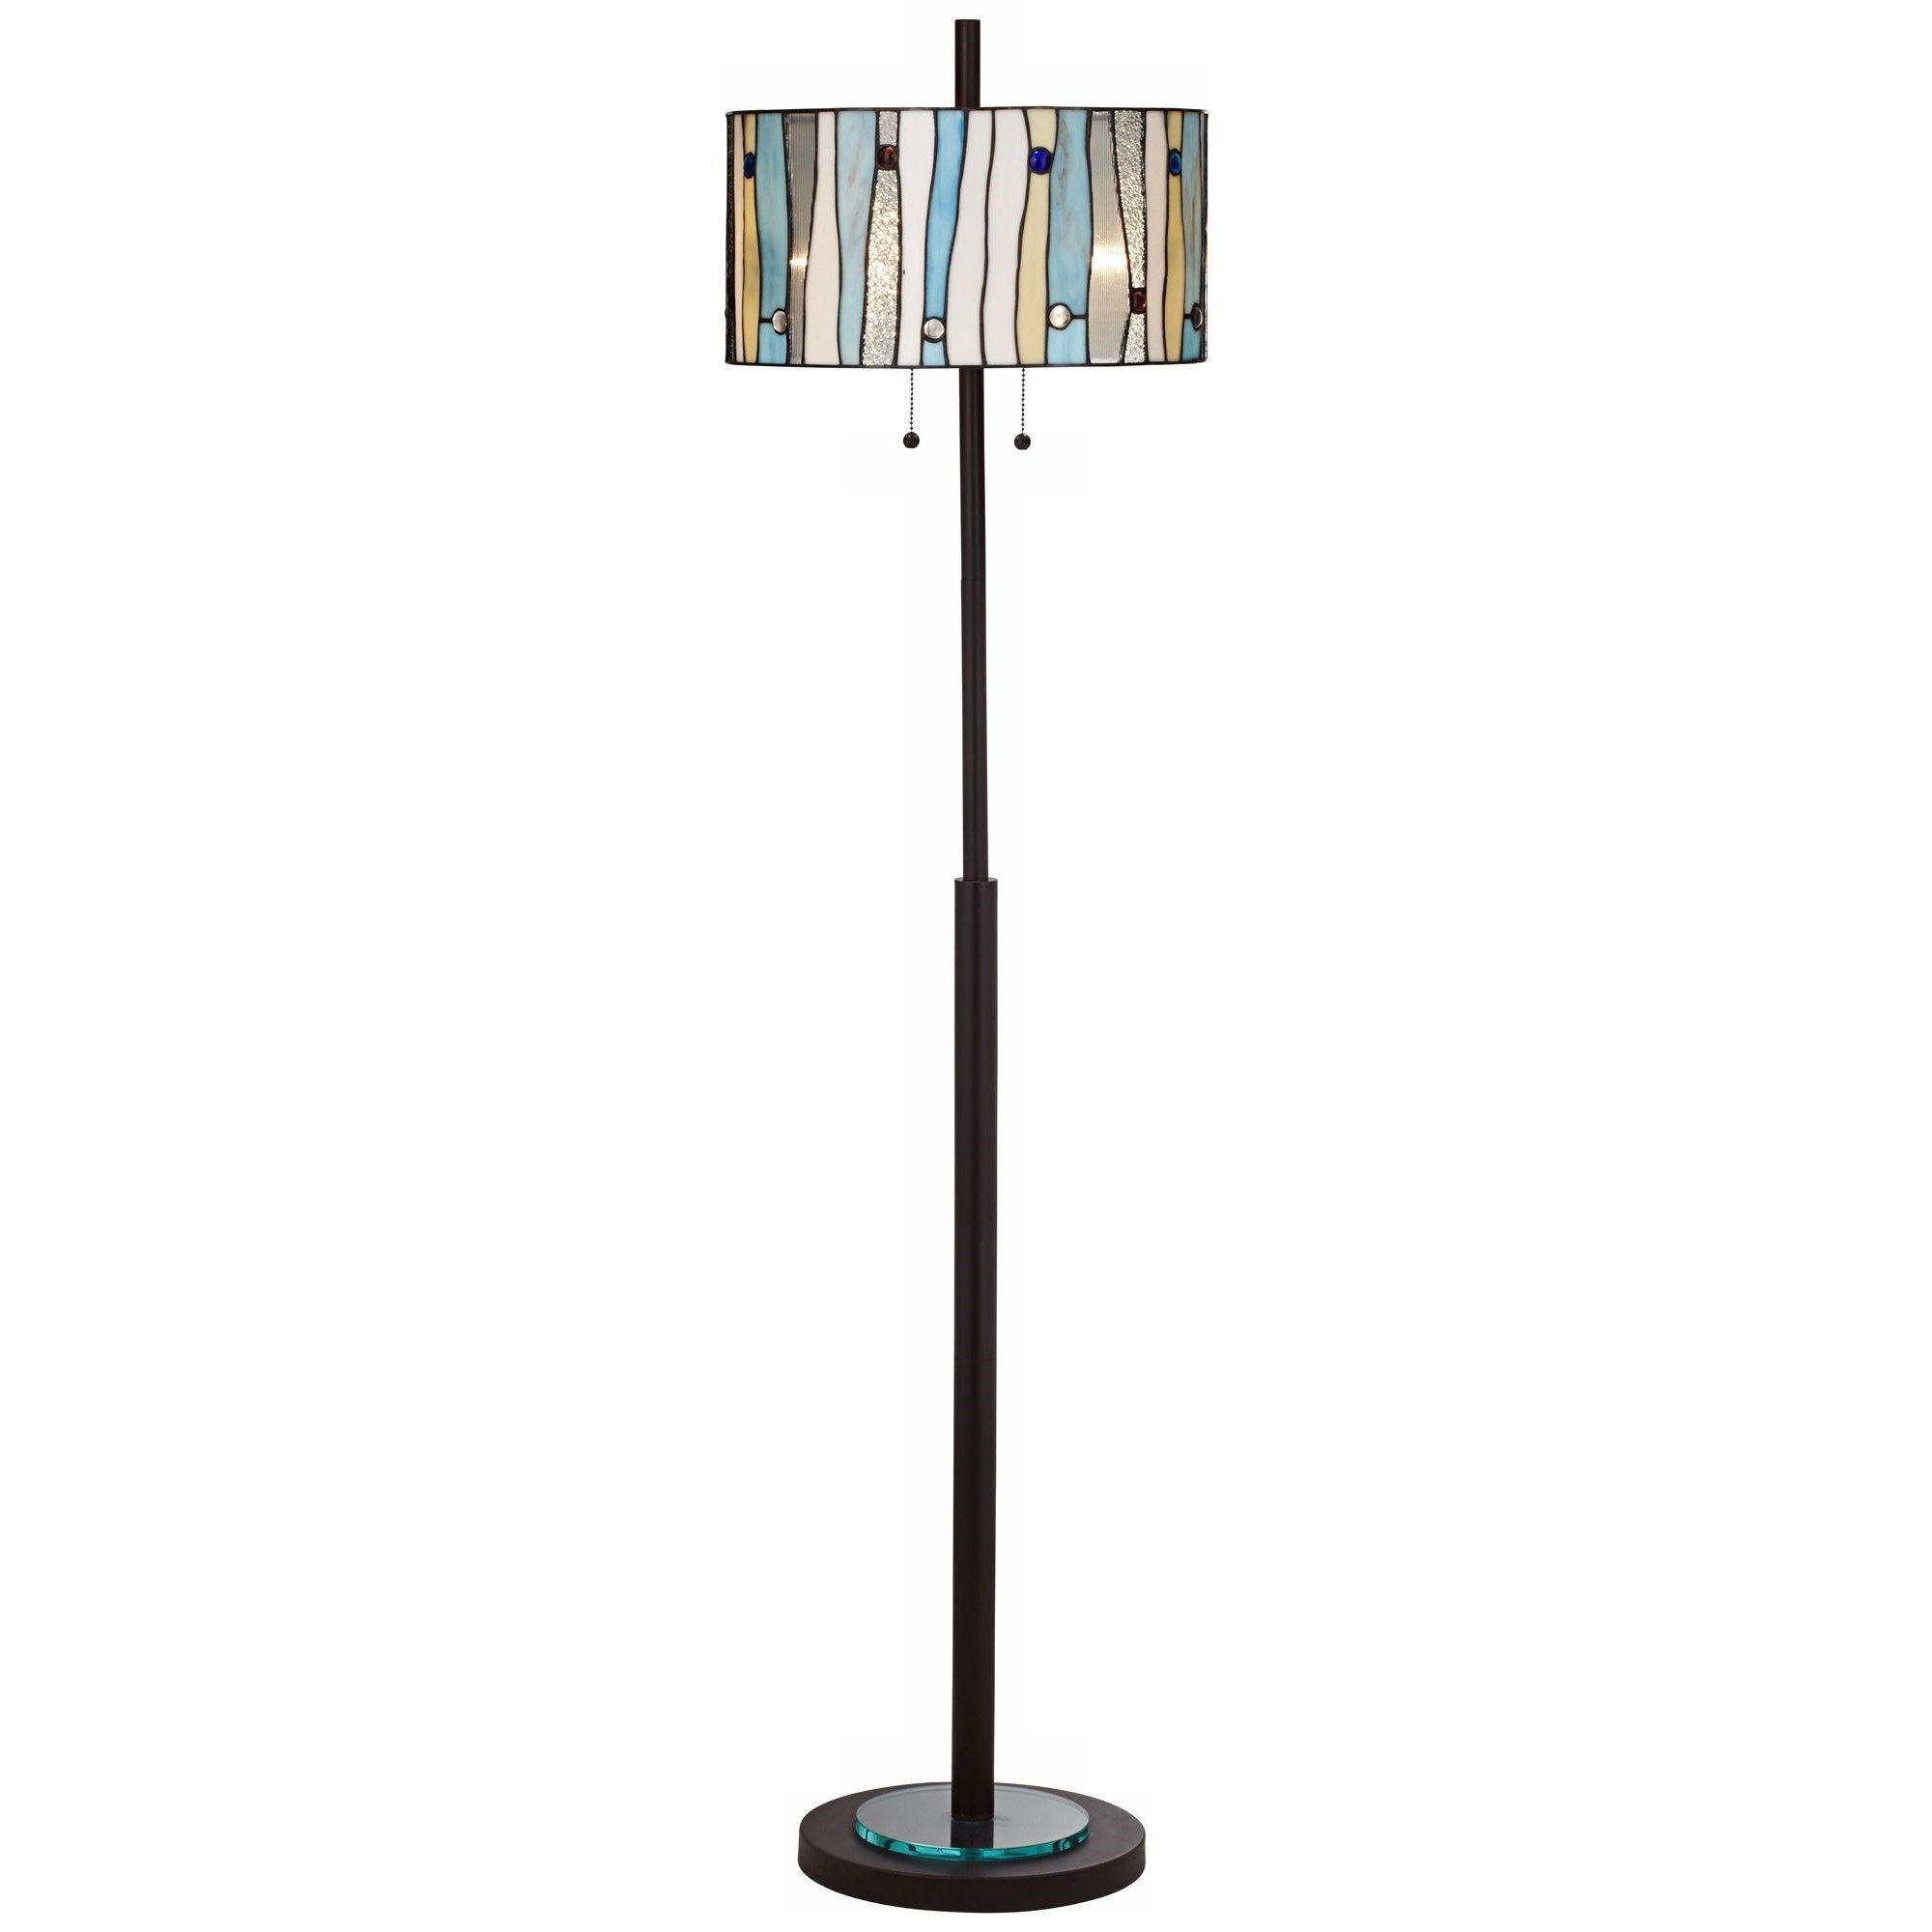 PCL FLOOR LAMPS Kig Appalachian Spirit Floor Lamp by PCL LIGHTING at Walker's Furniture